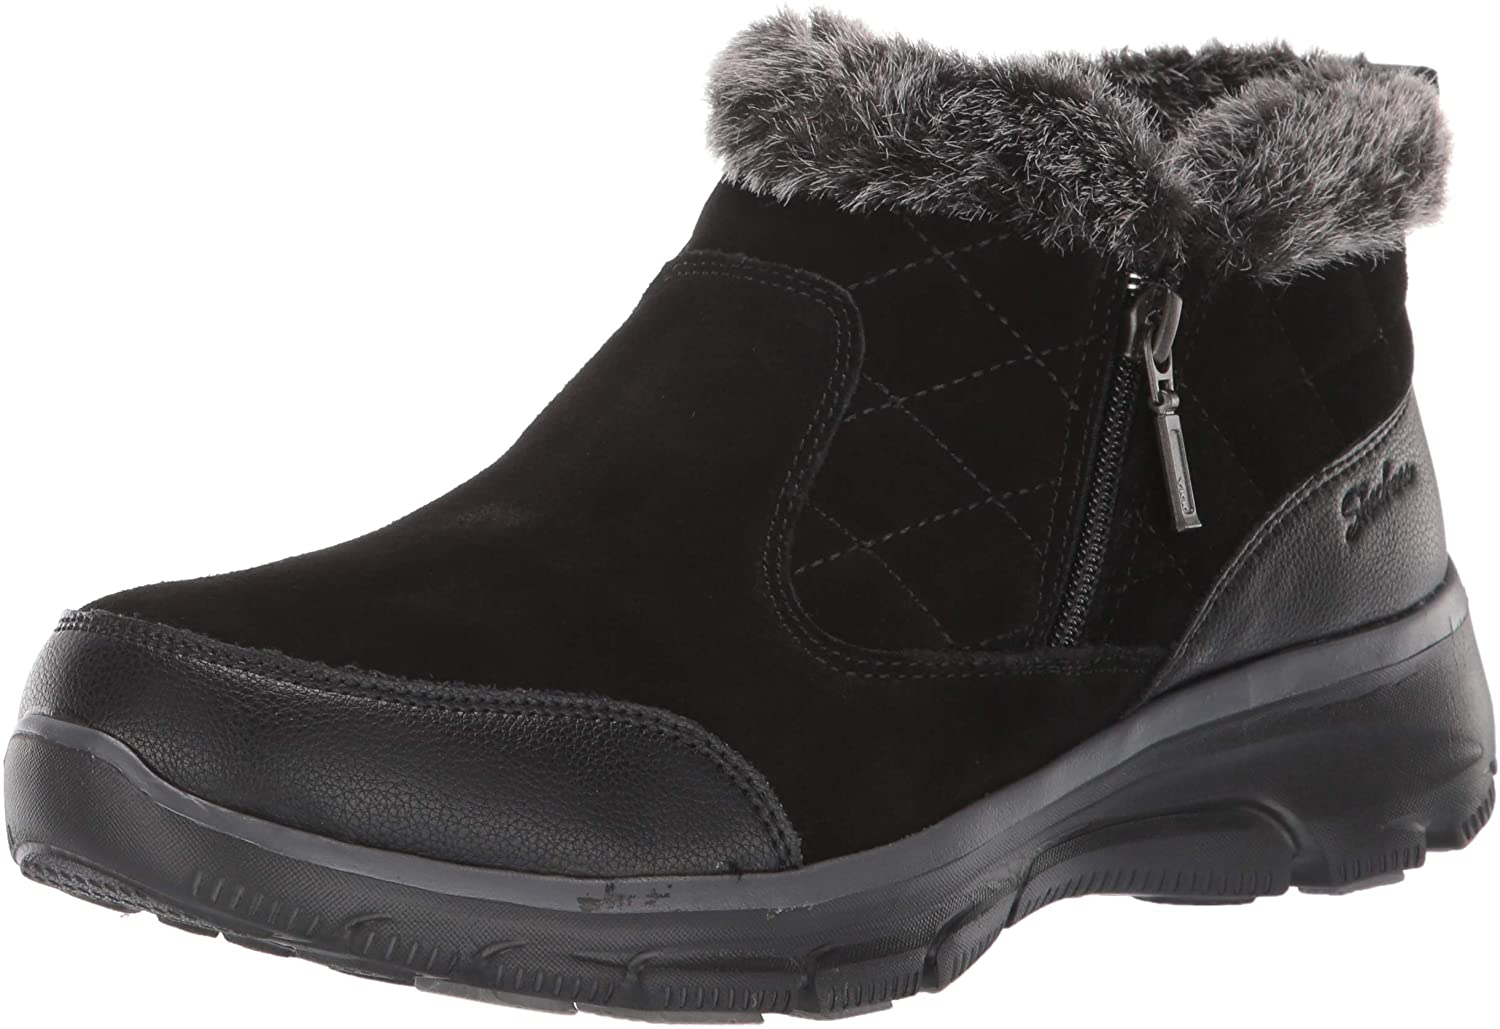 Skechers Women's Easy Going-Girl Crush-Quarter Zip Quilted Bootie Ankle Boot